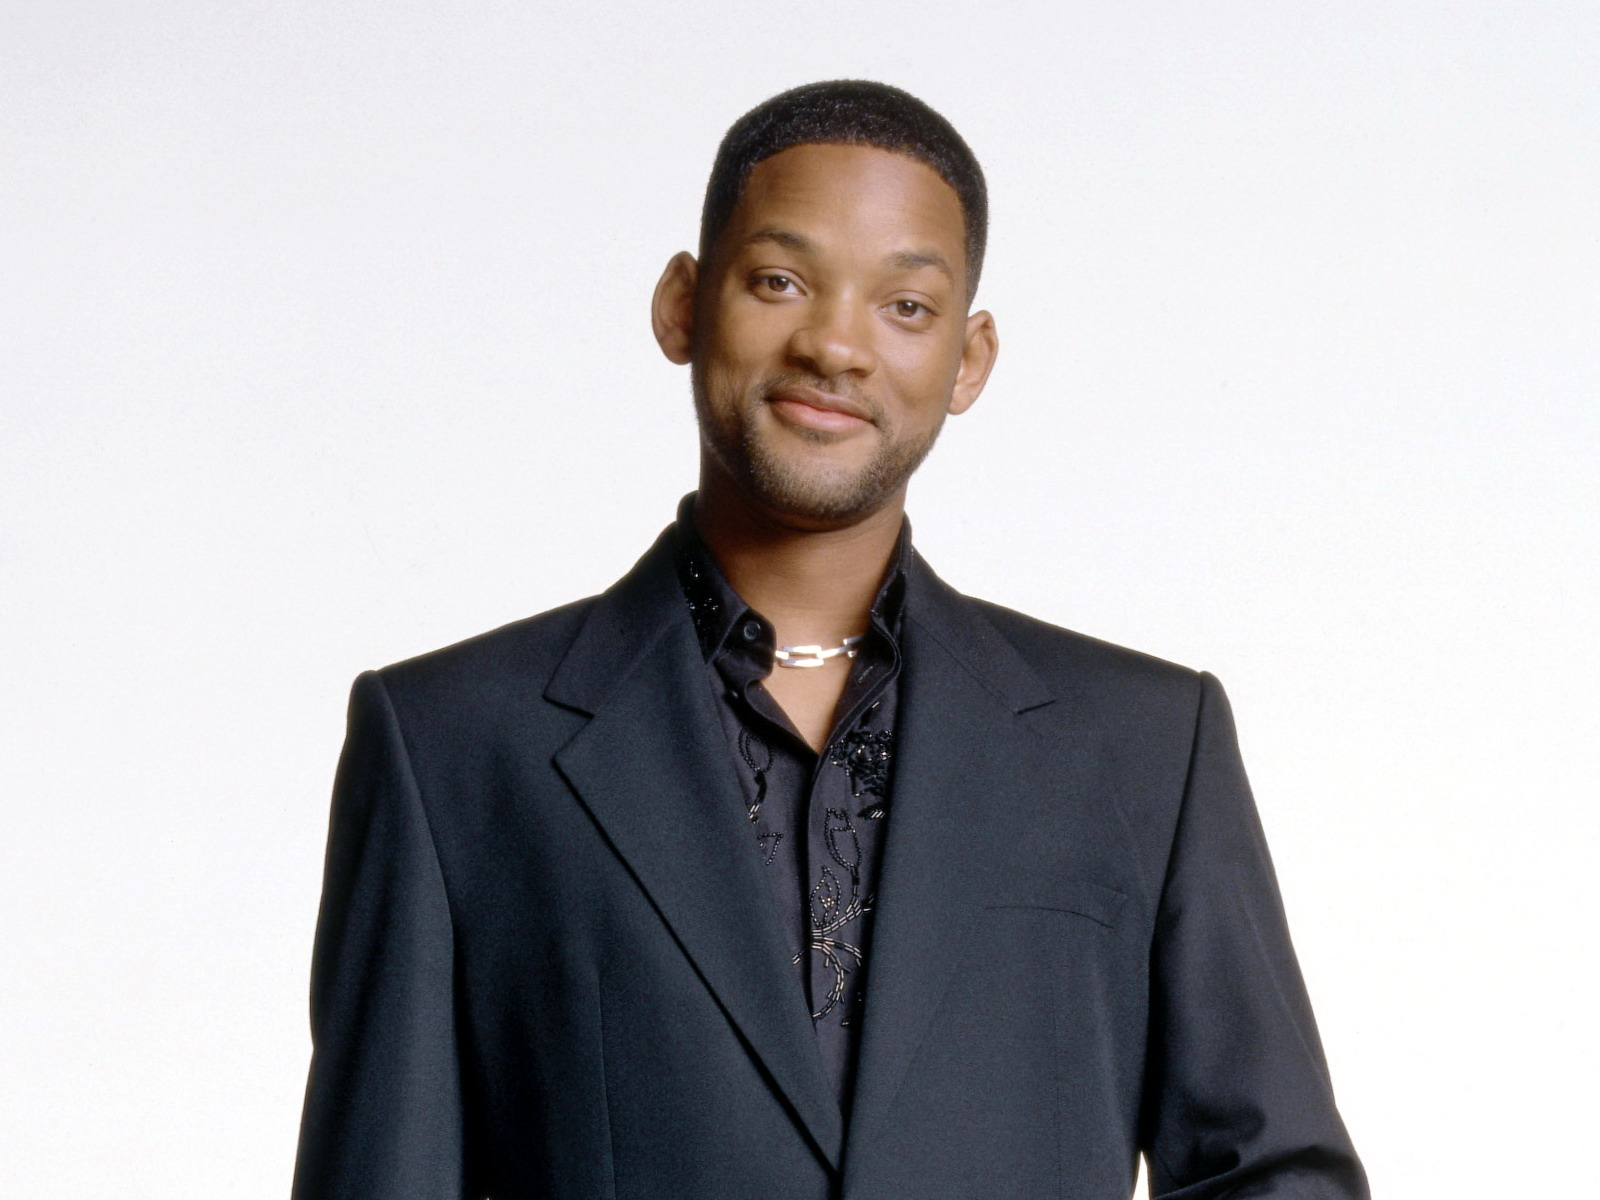 Will Smith: Will Smith Net Worth